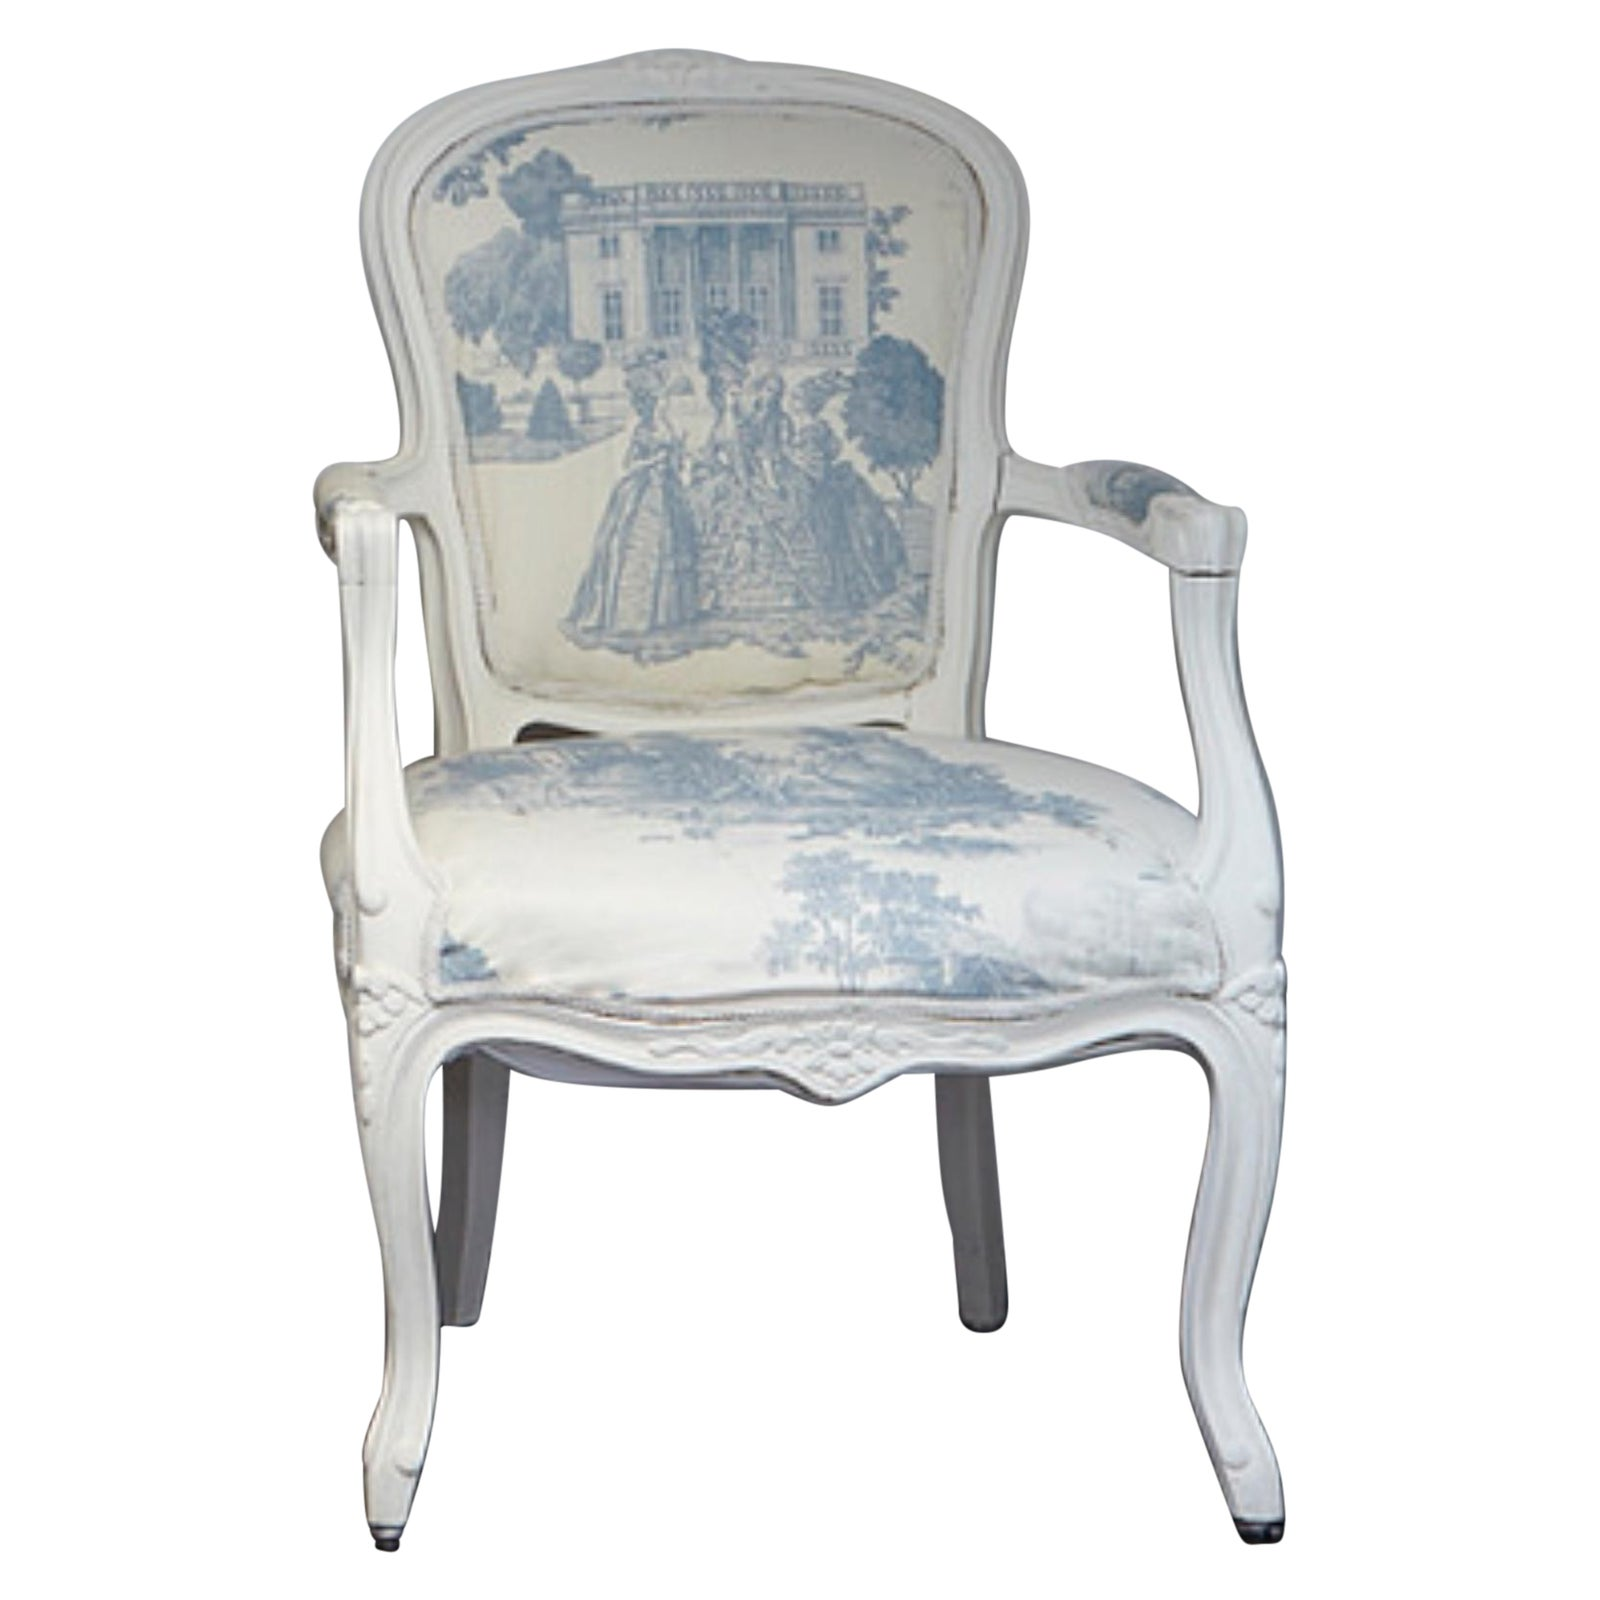 Peachy French Louis Blue Cream Toile Xv Style Arm Chair Machost Co Dining Chair Design Ideas Machostcouk